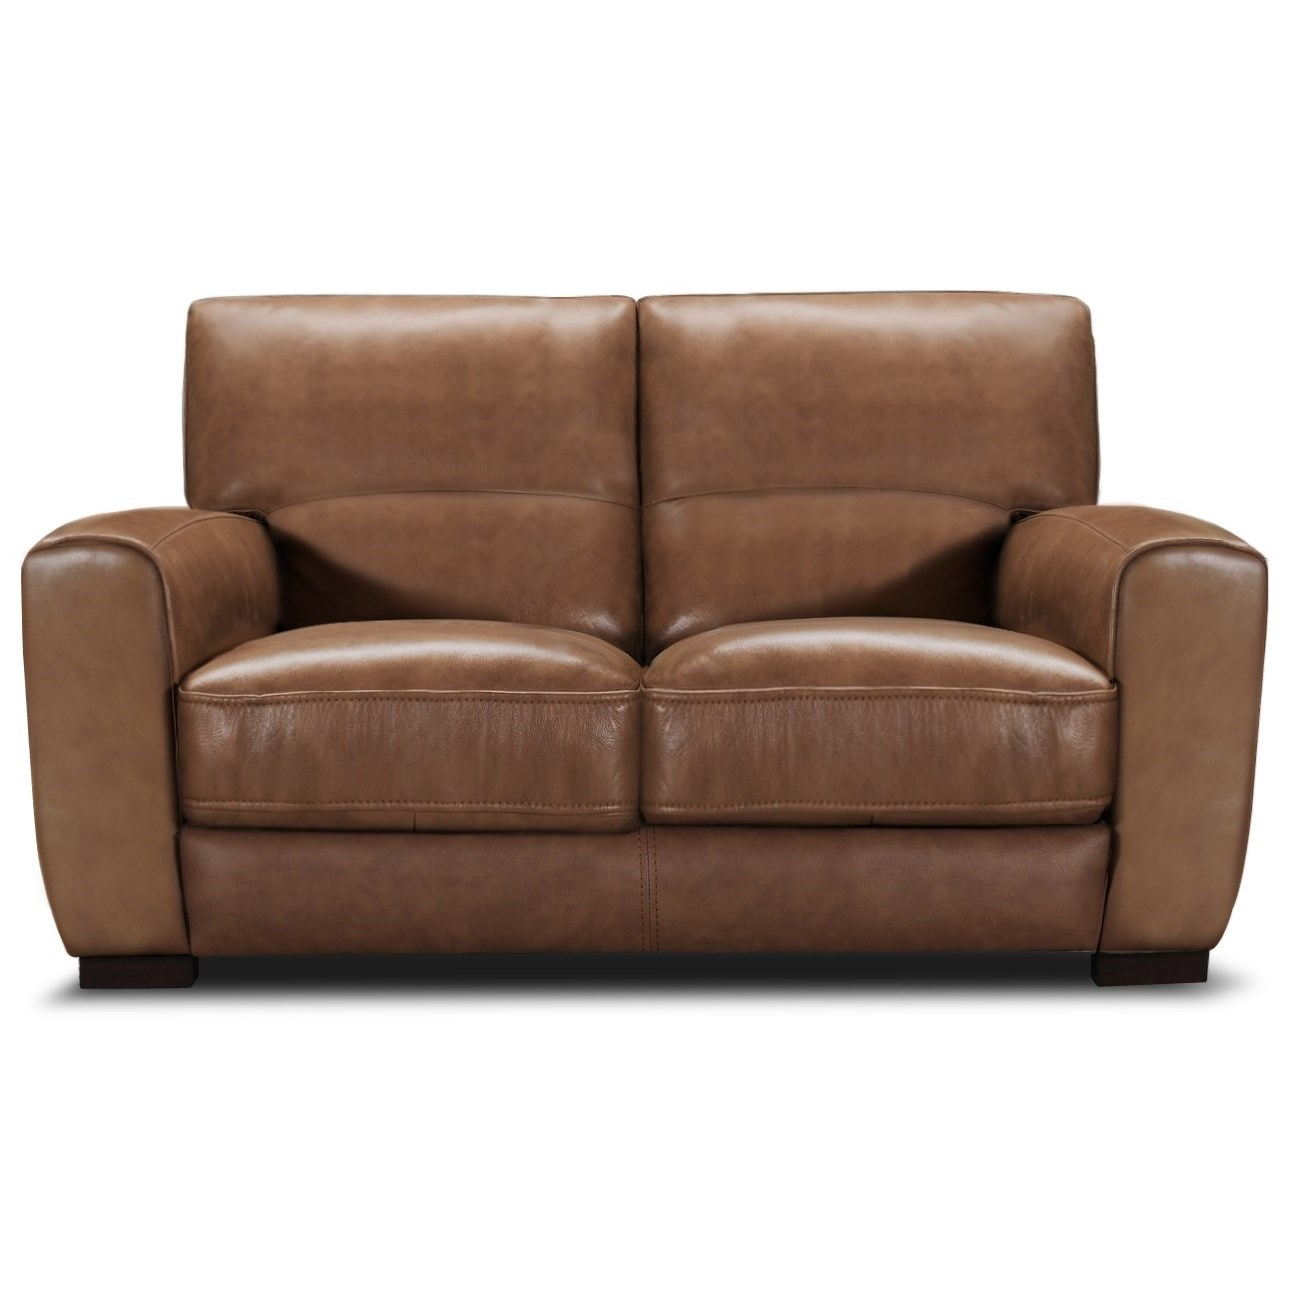 31366 Loveseat by Violino at Furniture Superstore - Rochester, MN